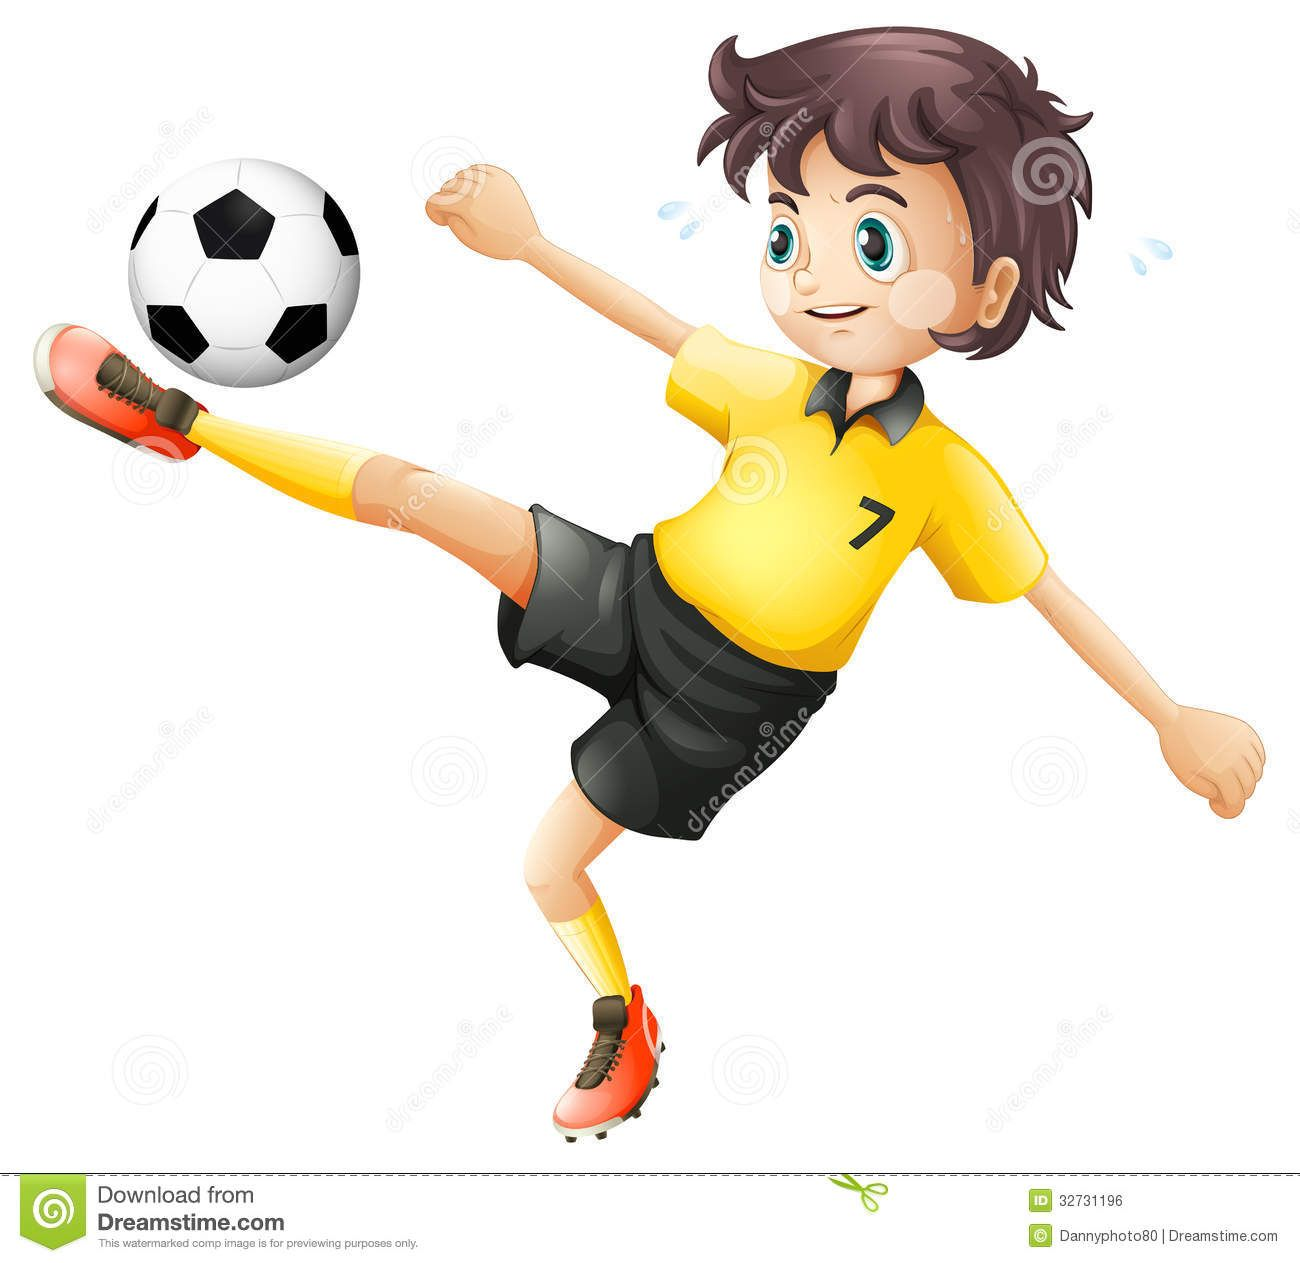 Boy Kicking Soccer Ball Illustrtaion White Background 32731196 Jpg 1300 1263 Nursery Wall Decals Soccer Boy Illustration